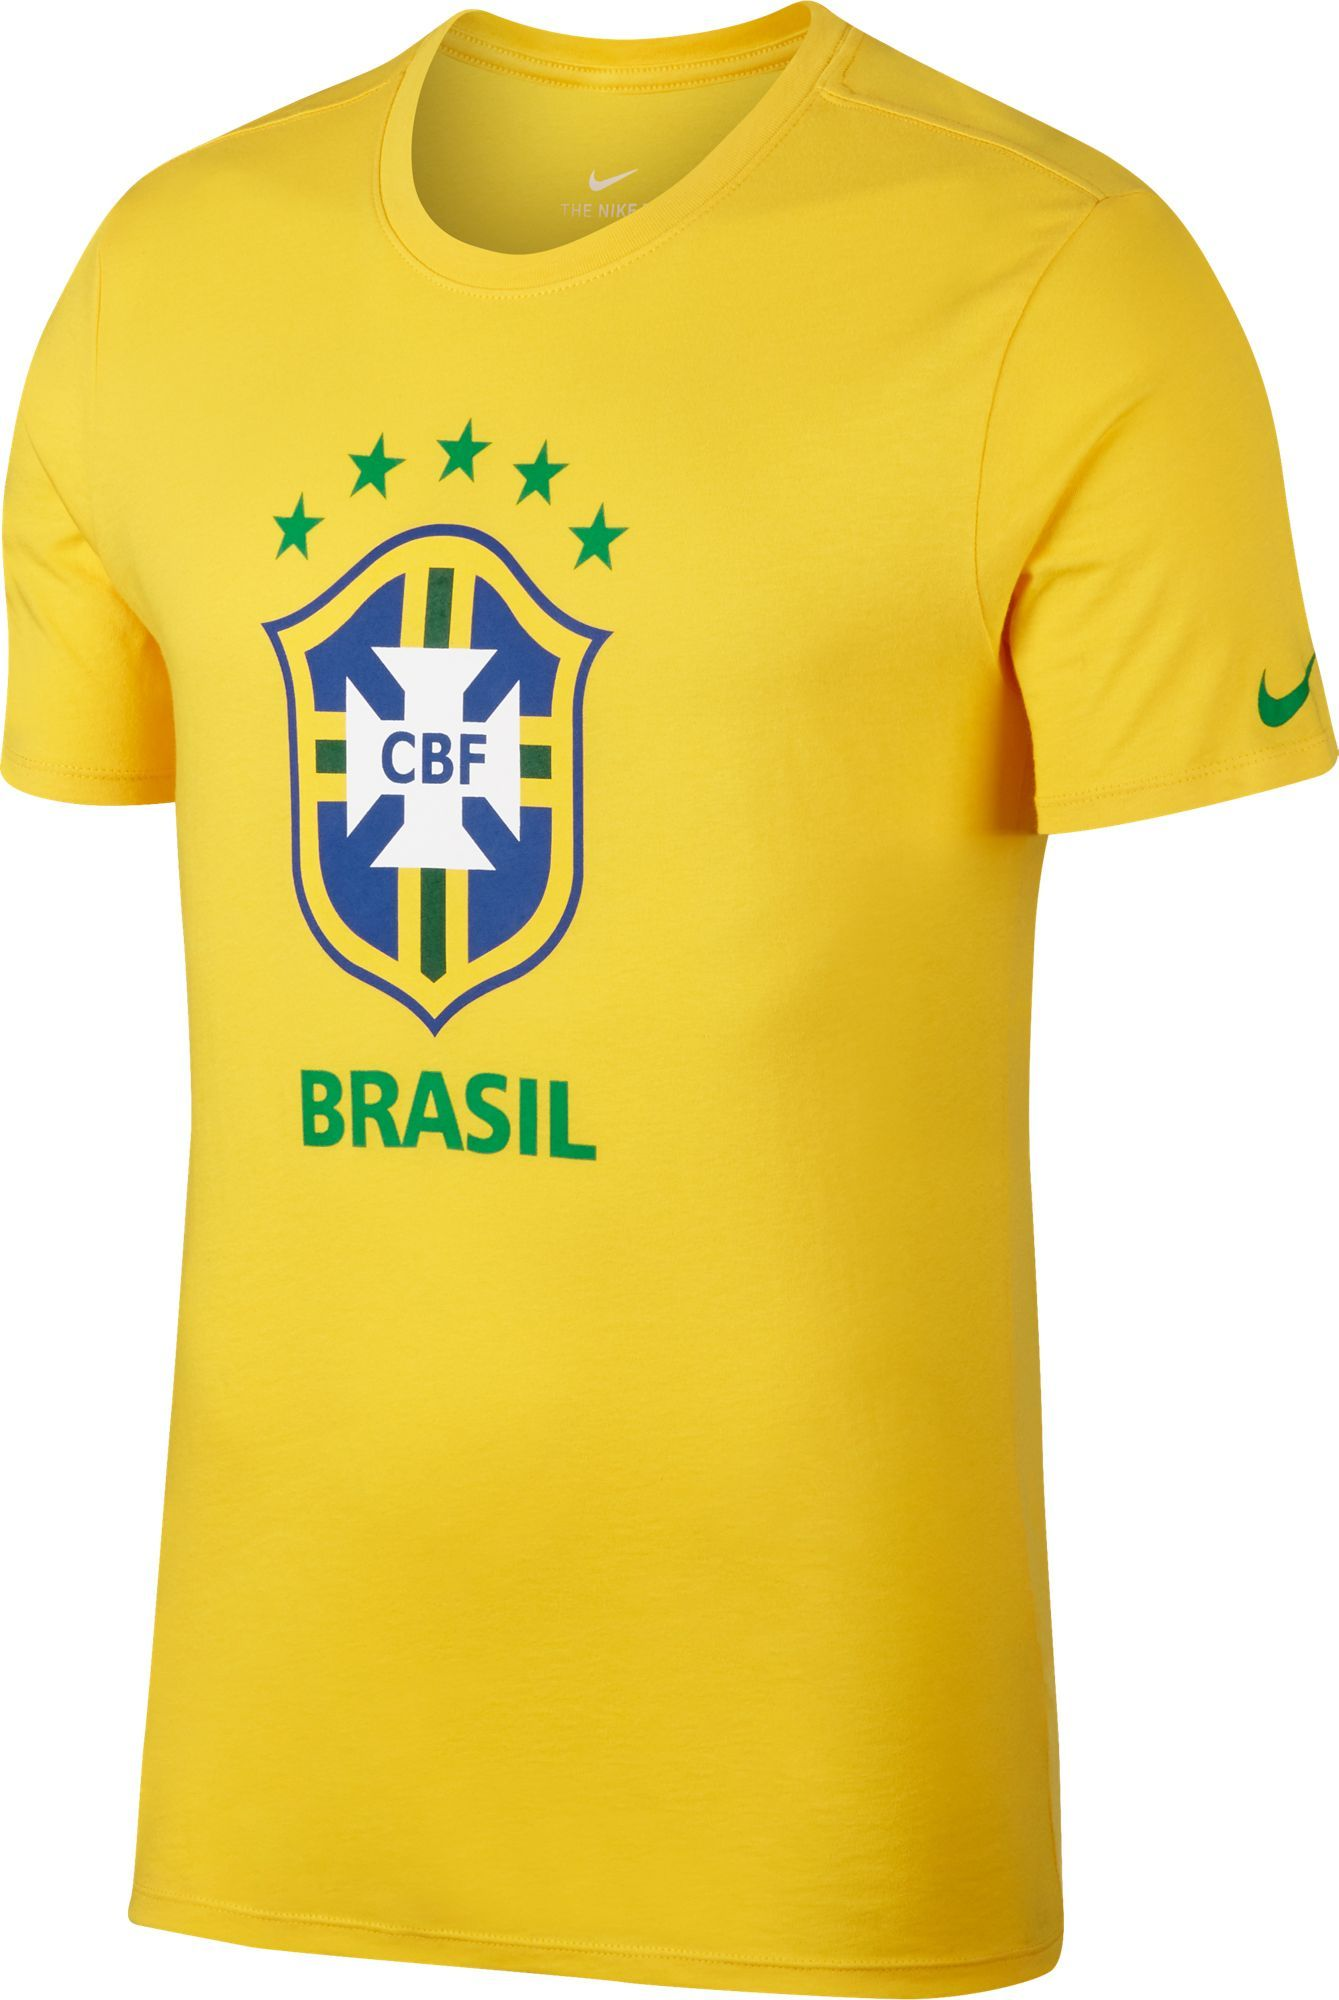 e8a40e9cb Nike Men's 2018 Fifa World Cup Brazil Crest Yellow T-Shirt, Multi